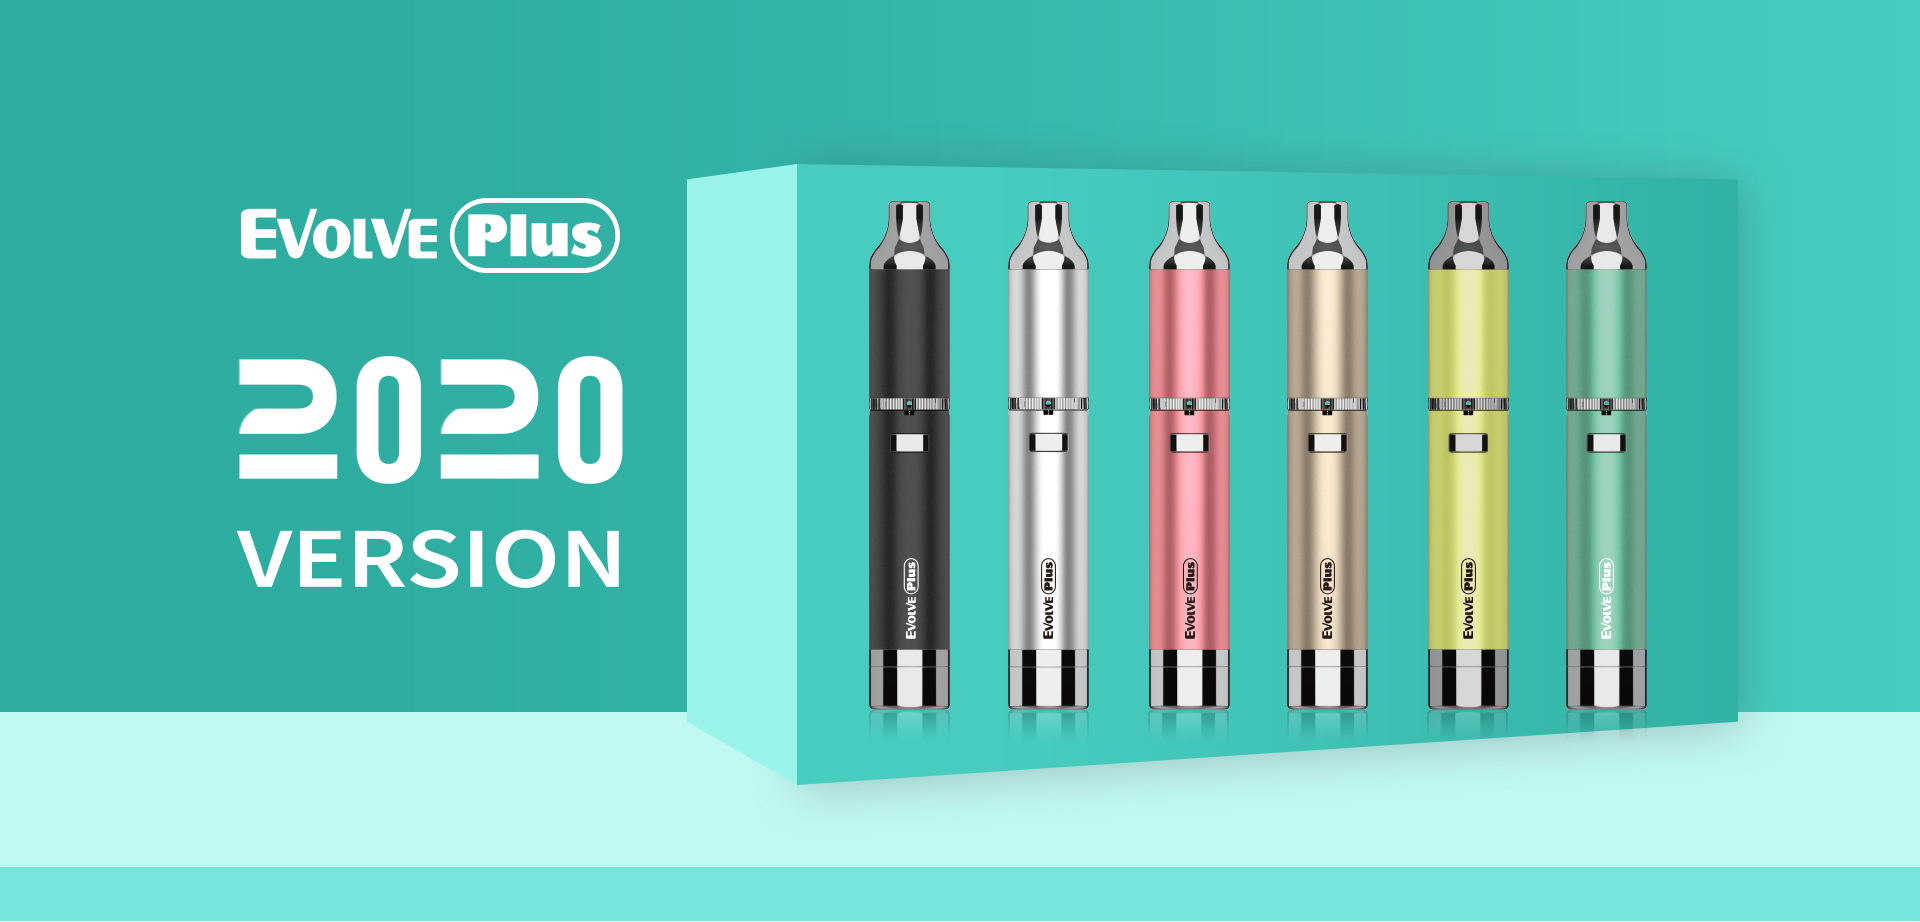 Yocan Evolve-Plus vaporizer pen 2020 version is a uniquely advanced vape pen.